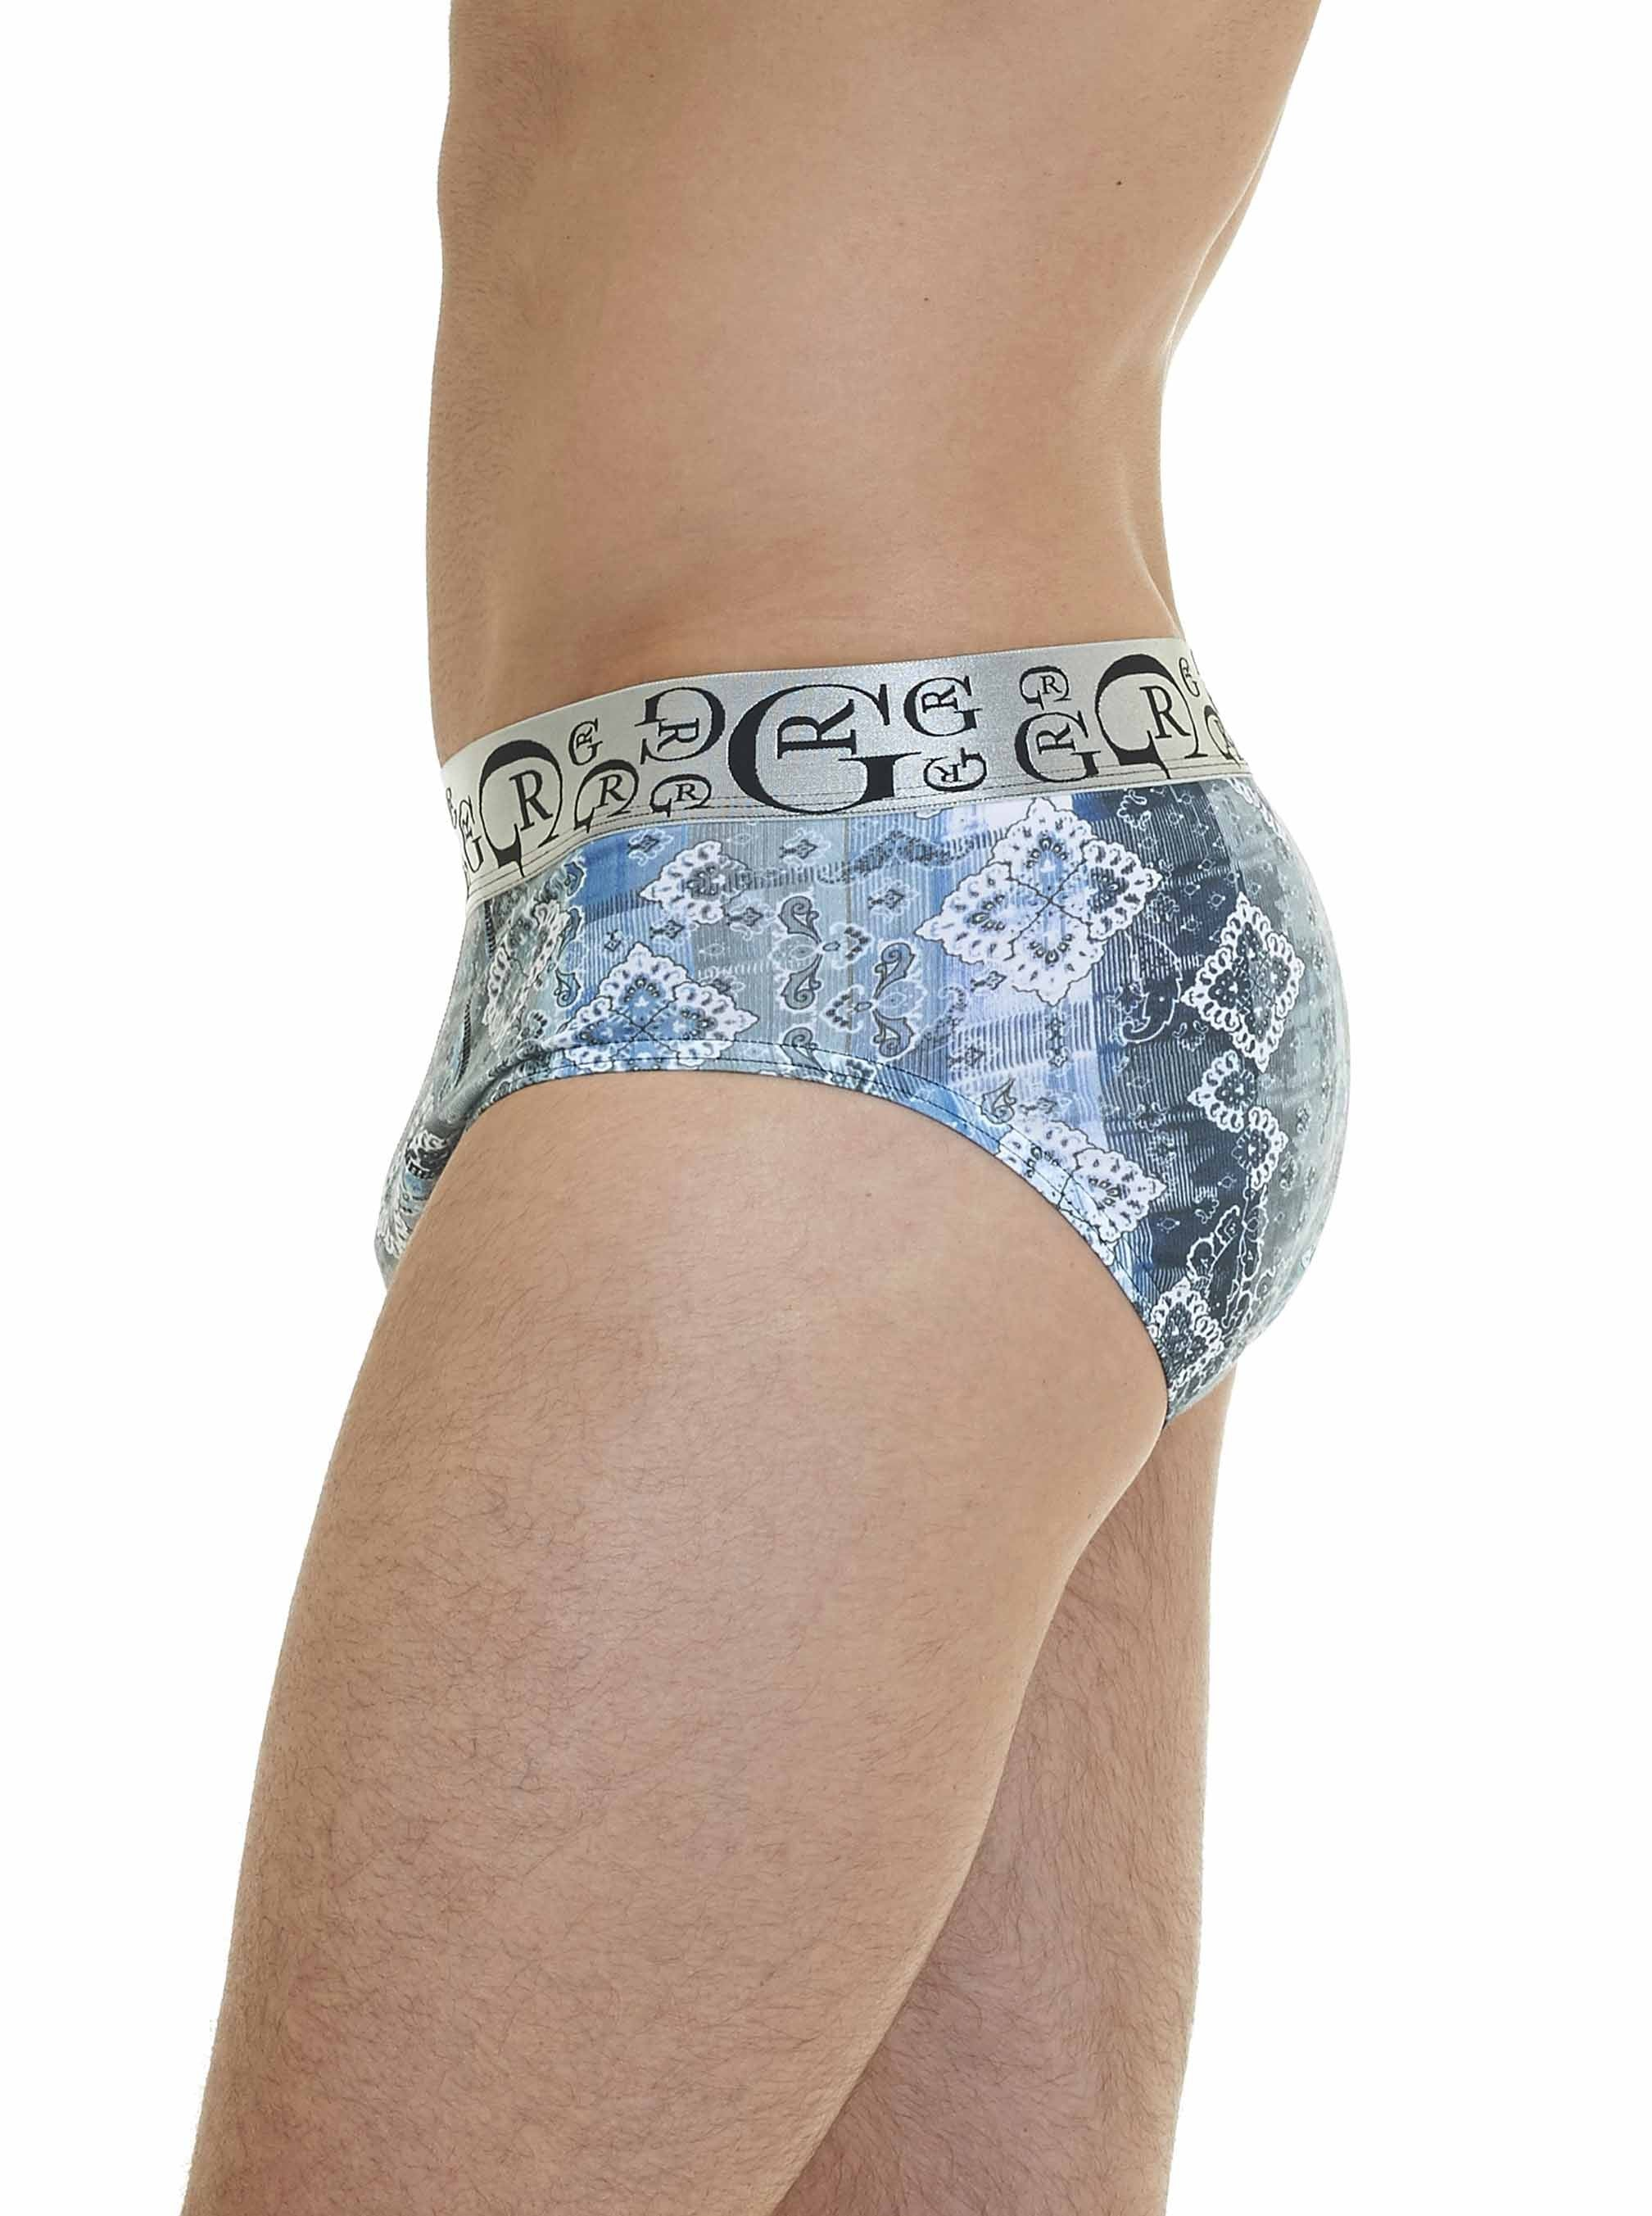 MARRAKESH BRIEF,Underwear,Robert Graham, | GentRow.com